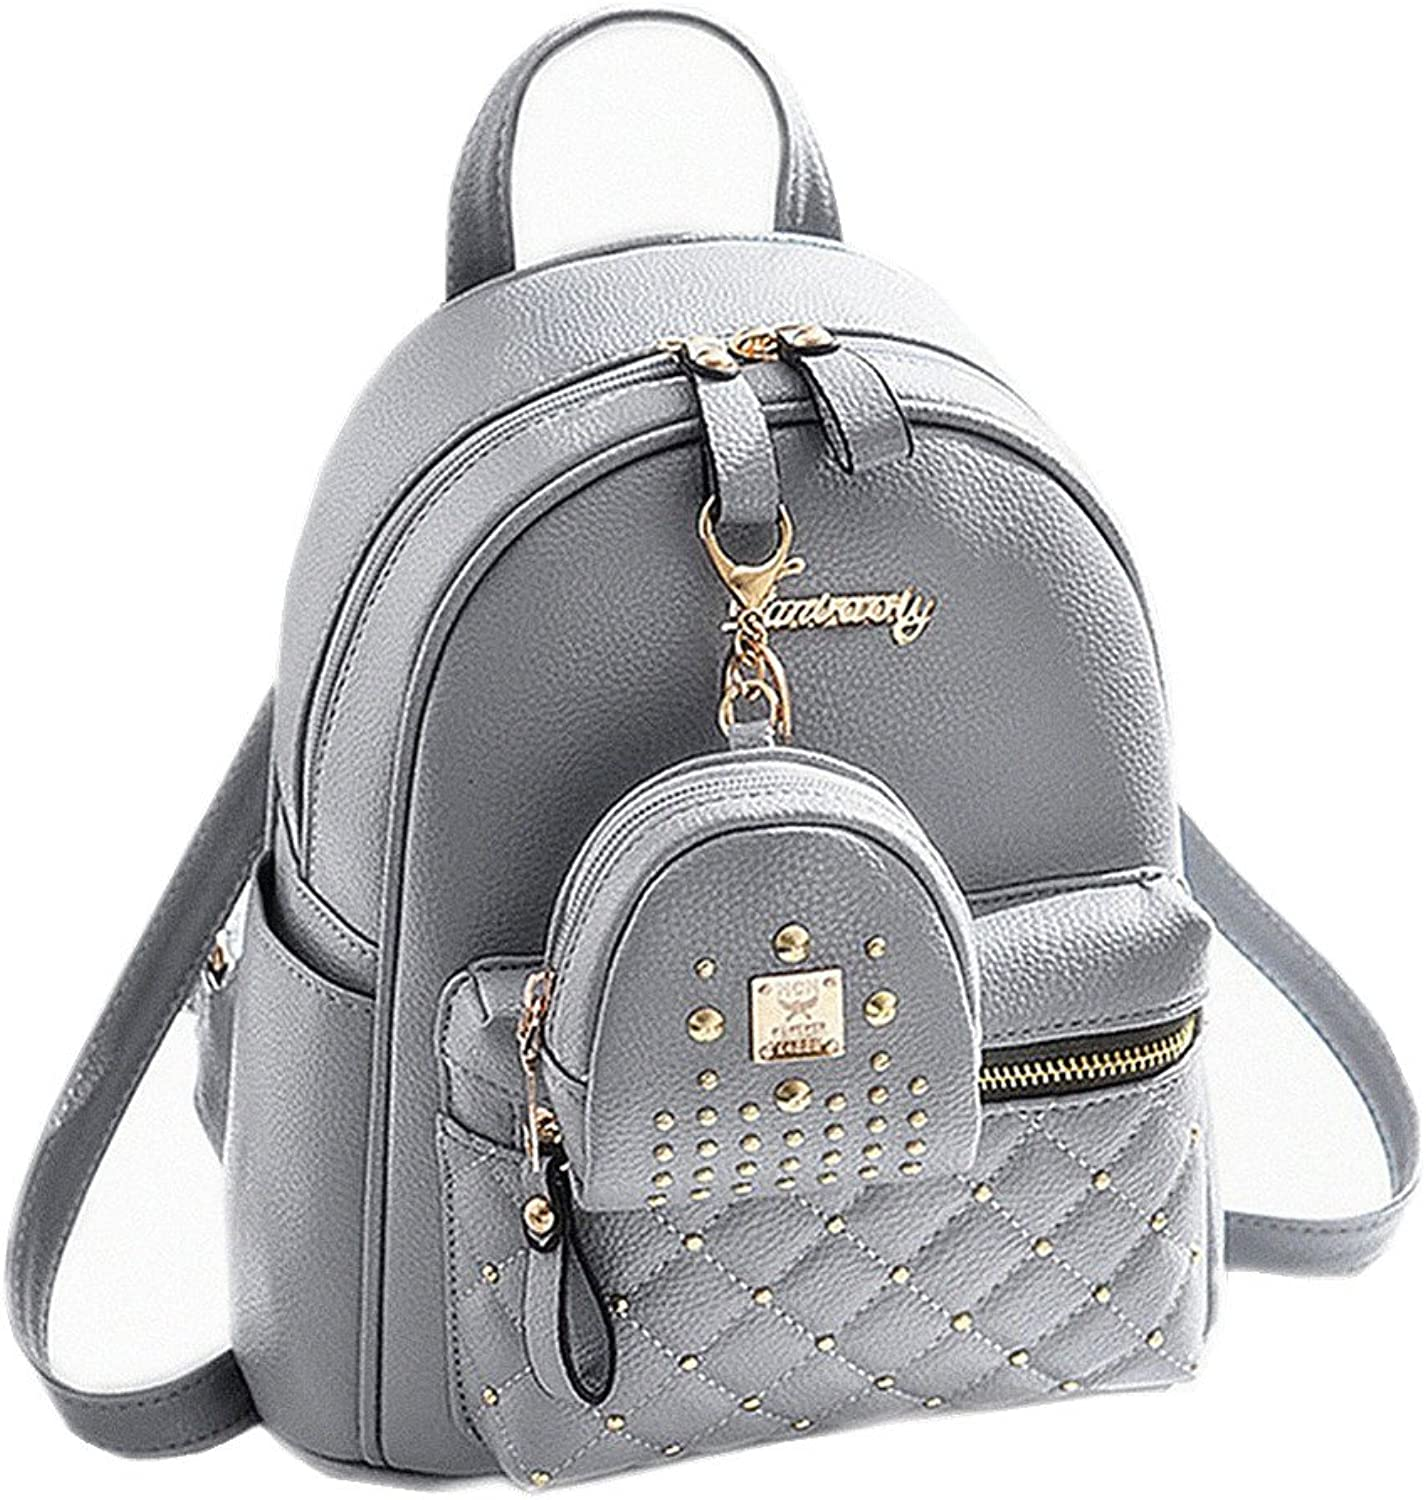 Cute Small Backpack Mini Purse Casual Daypacks Leather for Teen Girls and Women (Grey)